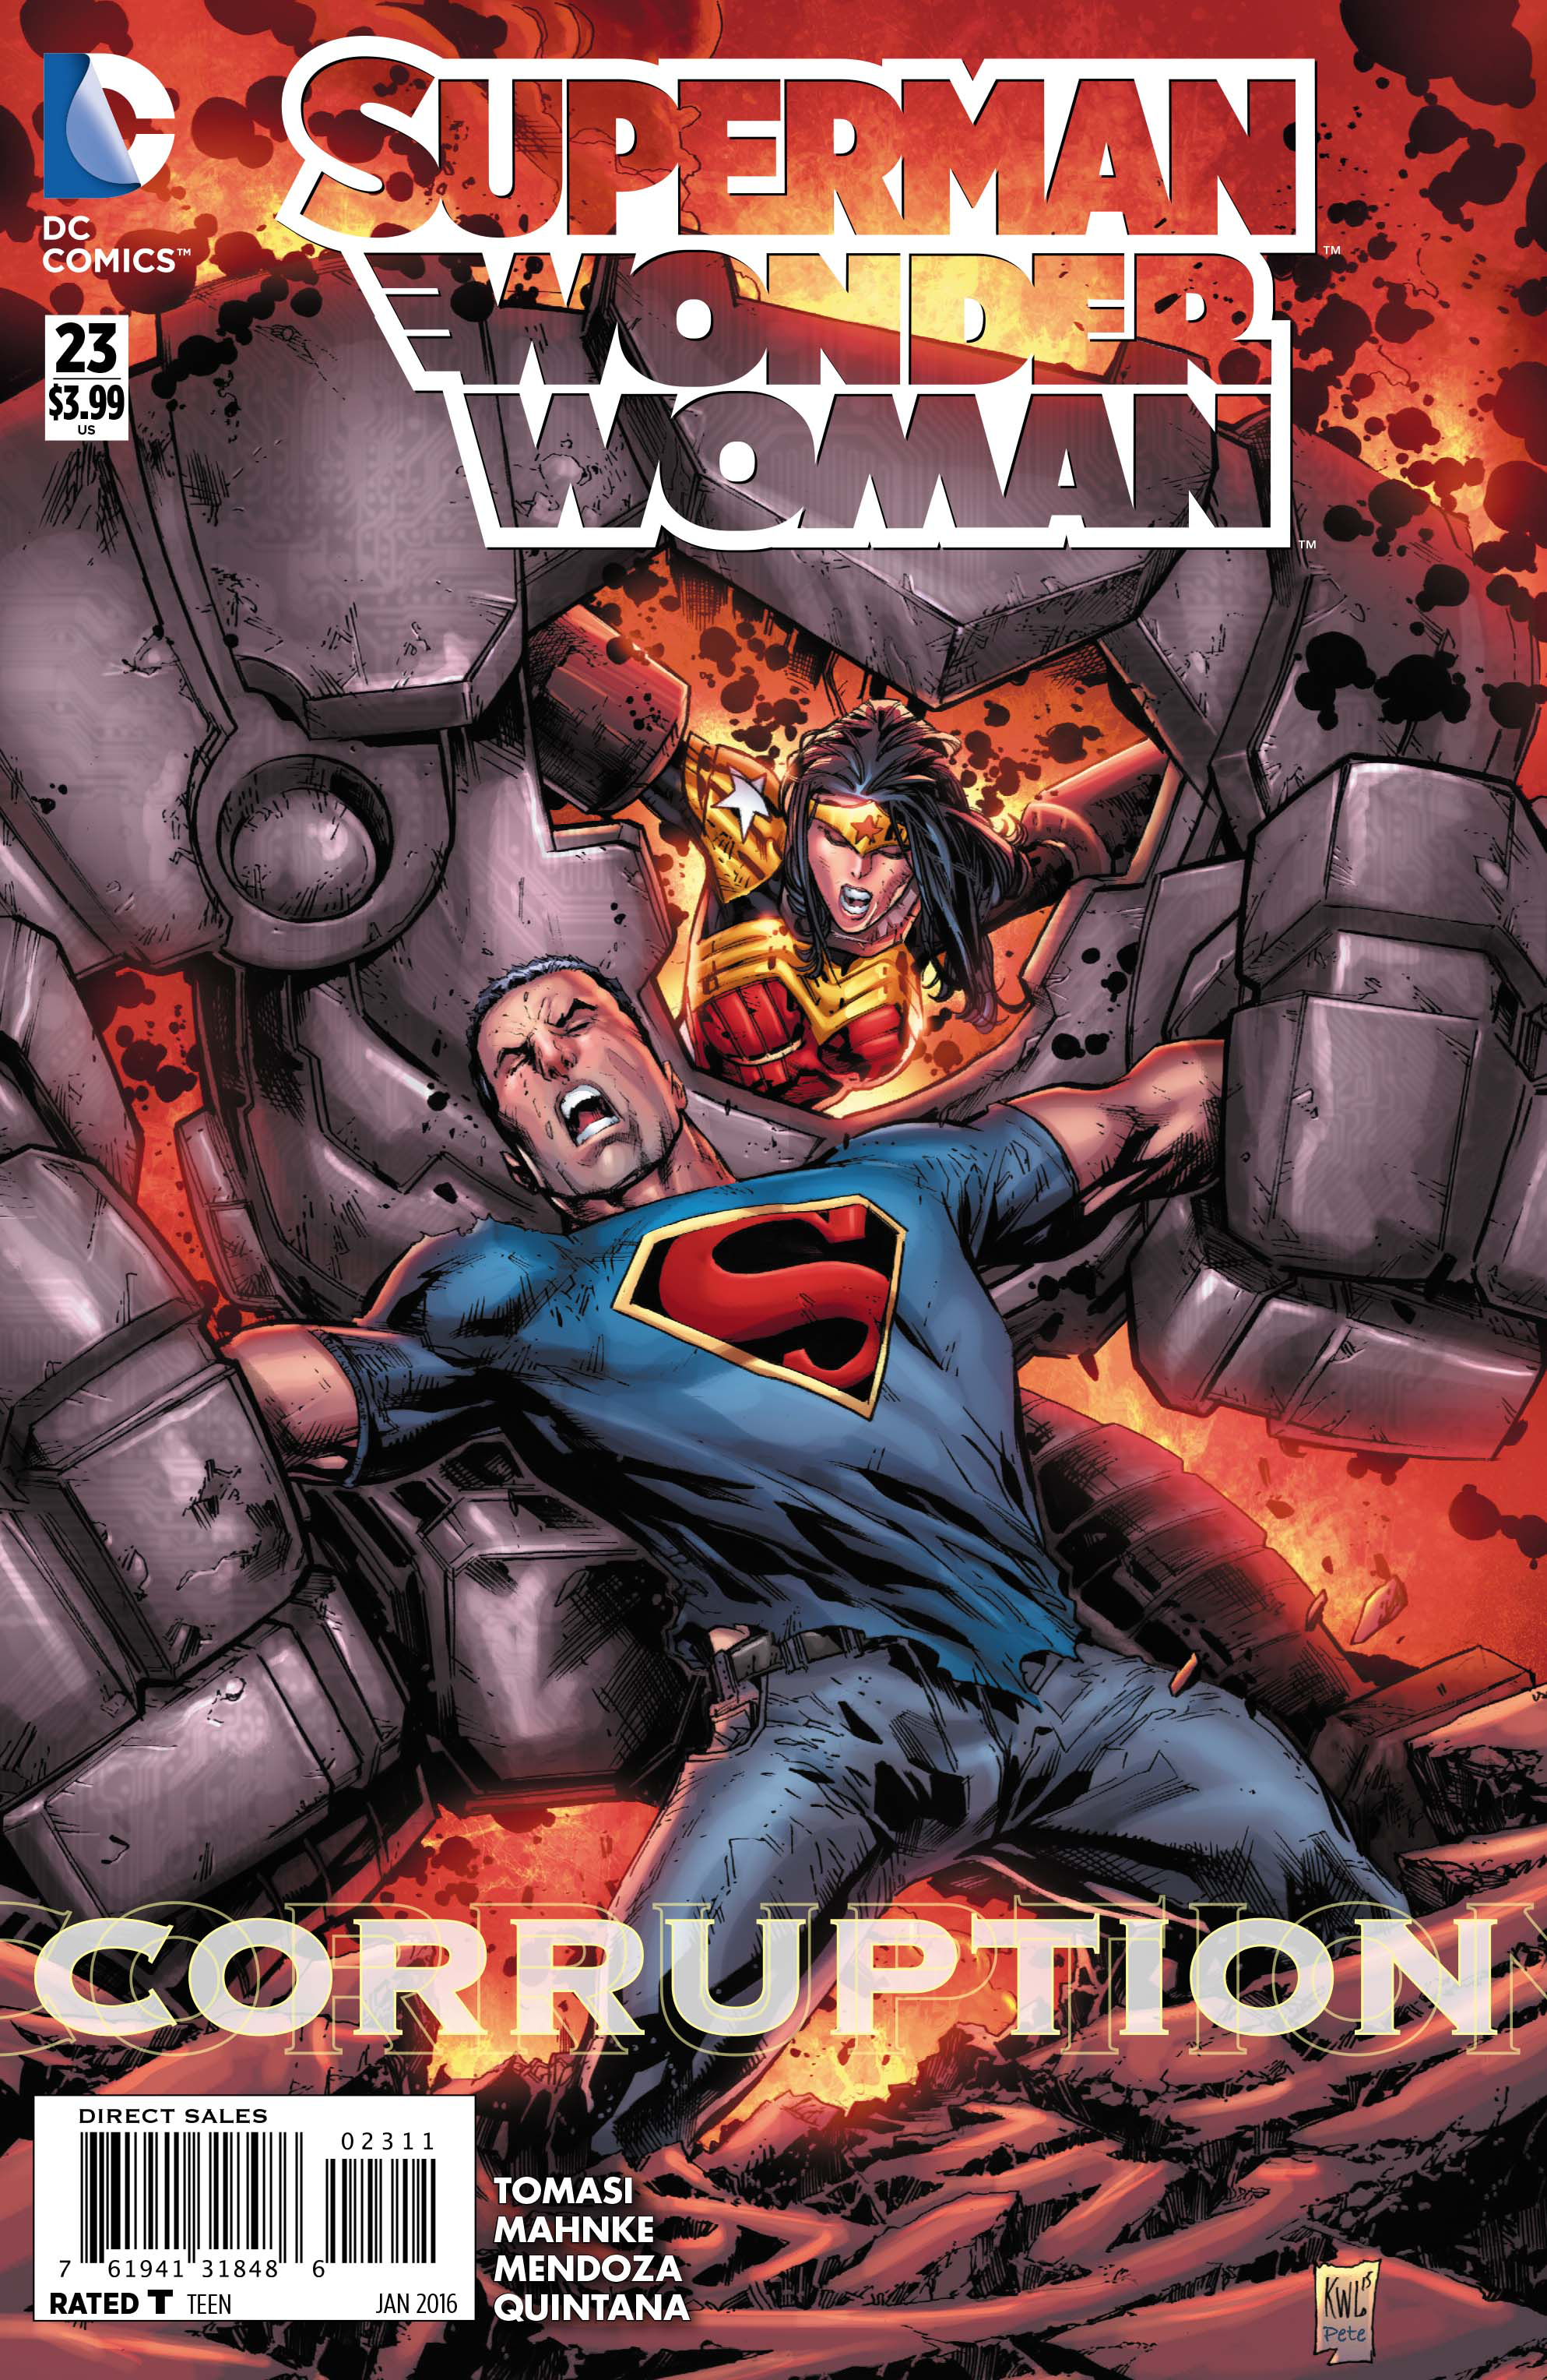 SUPERMAN WONDER WOMAN #23